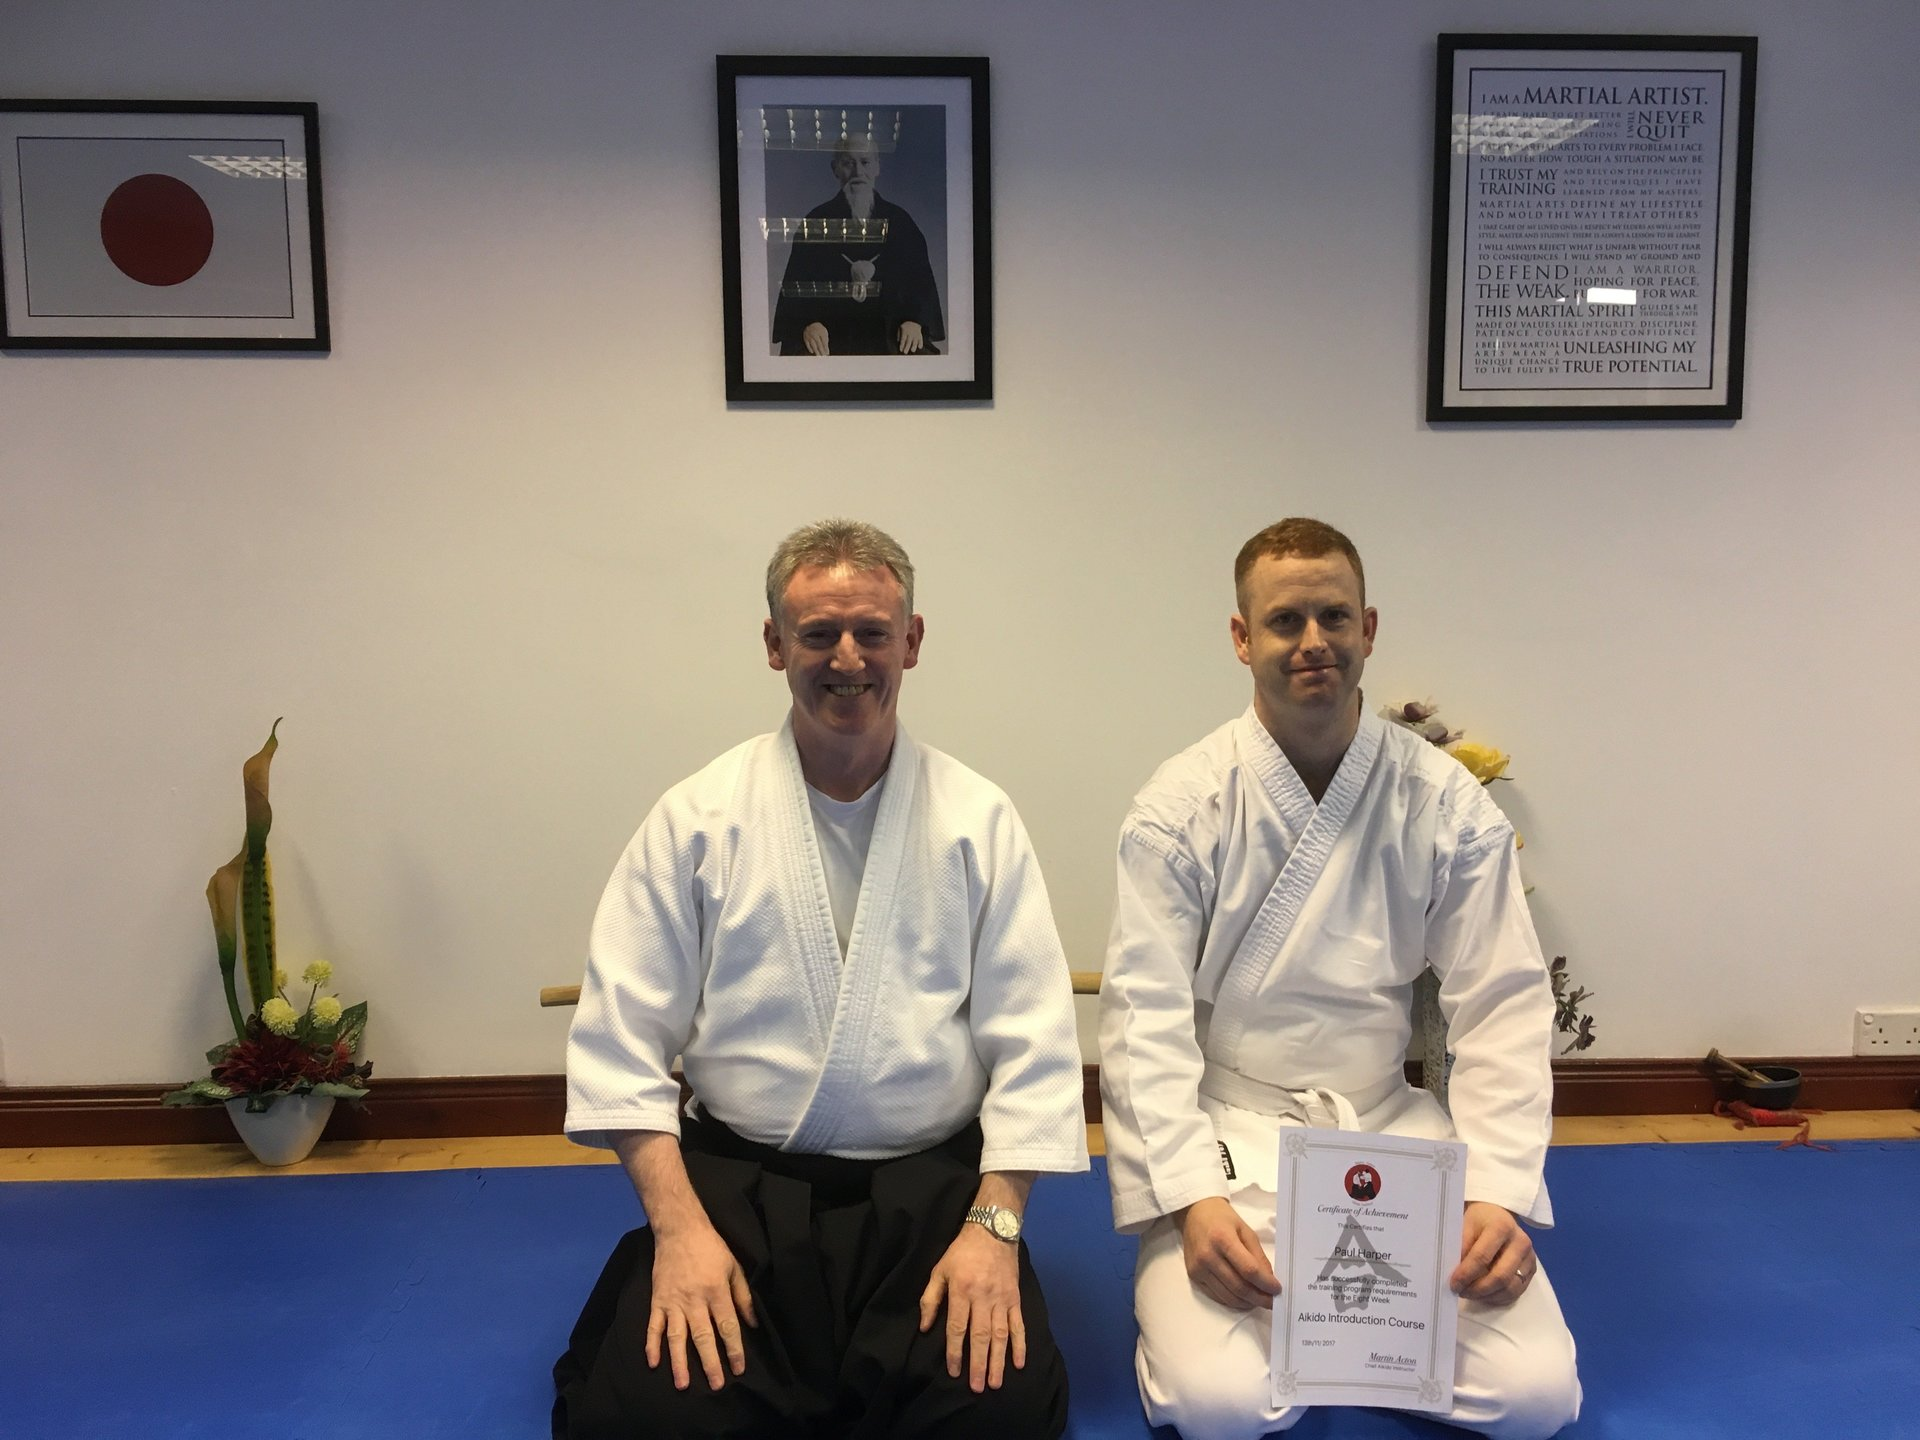 New Aikido student graduating his 8-Week Aikido Introduction Course on the 15-11-2017 at Martin Acton' Aikido Institute.